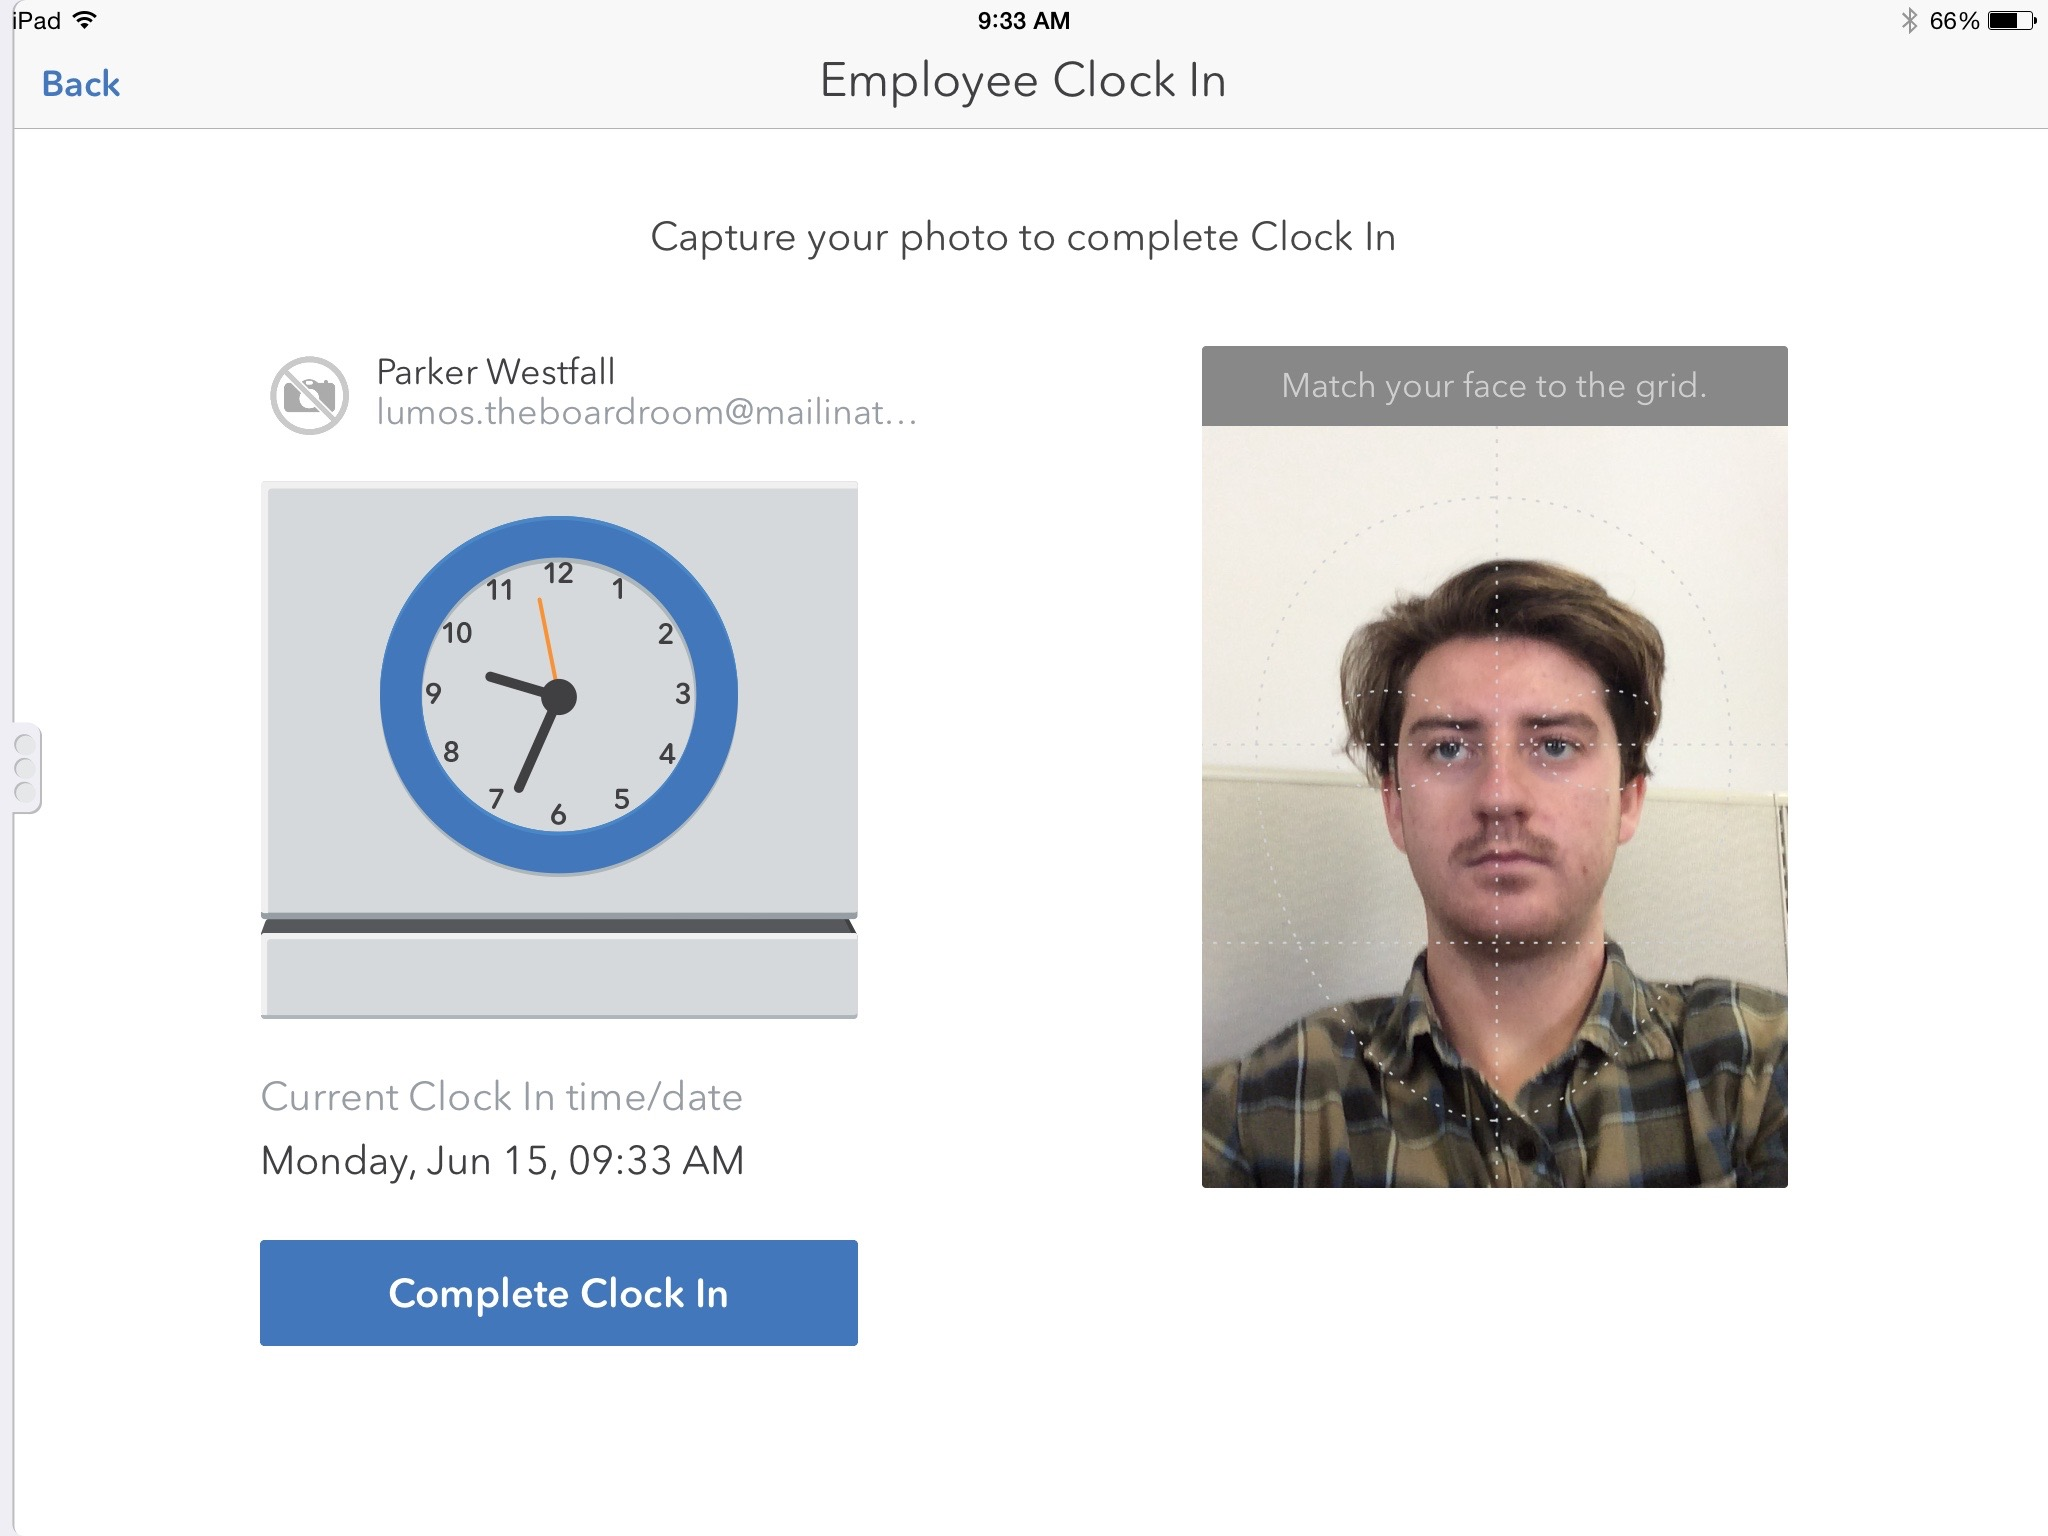 Employee clock-in facility